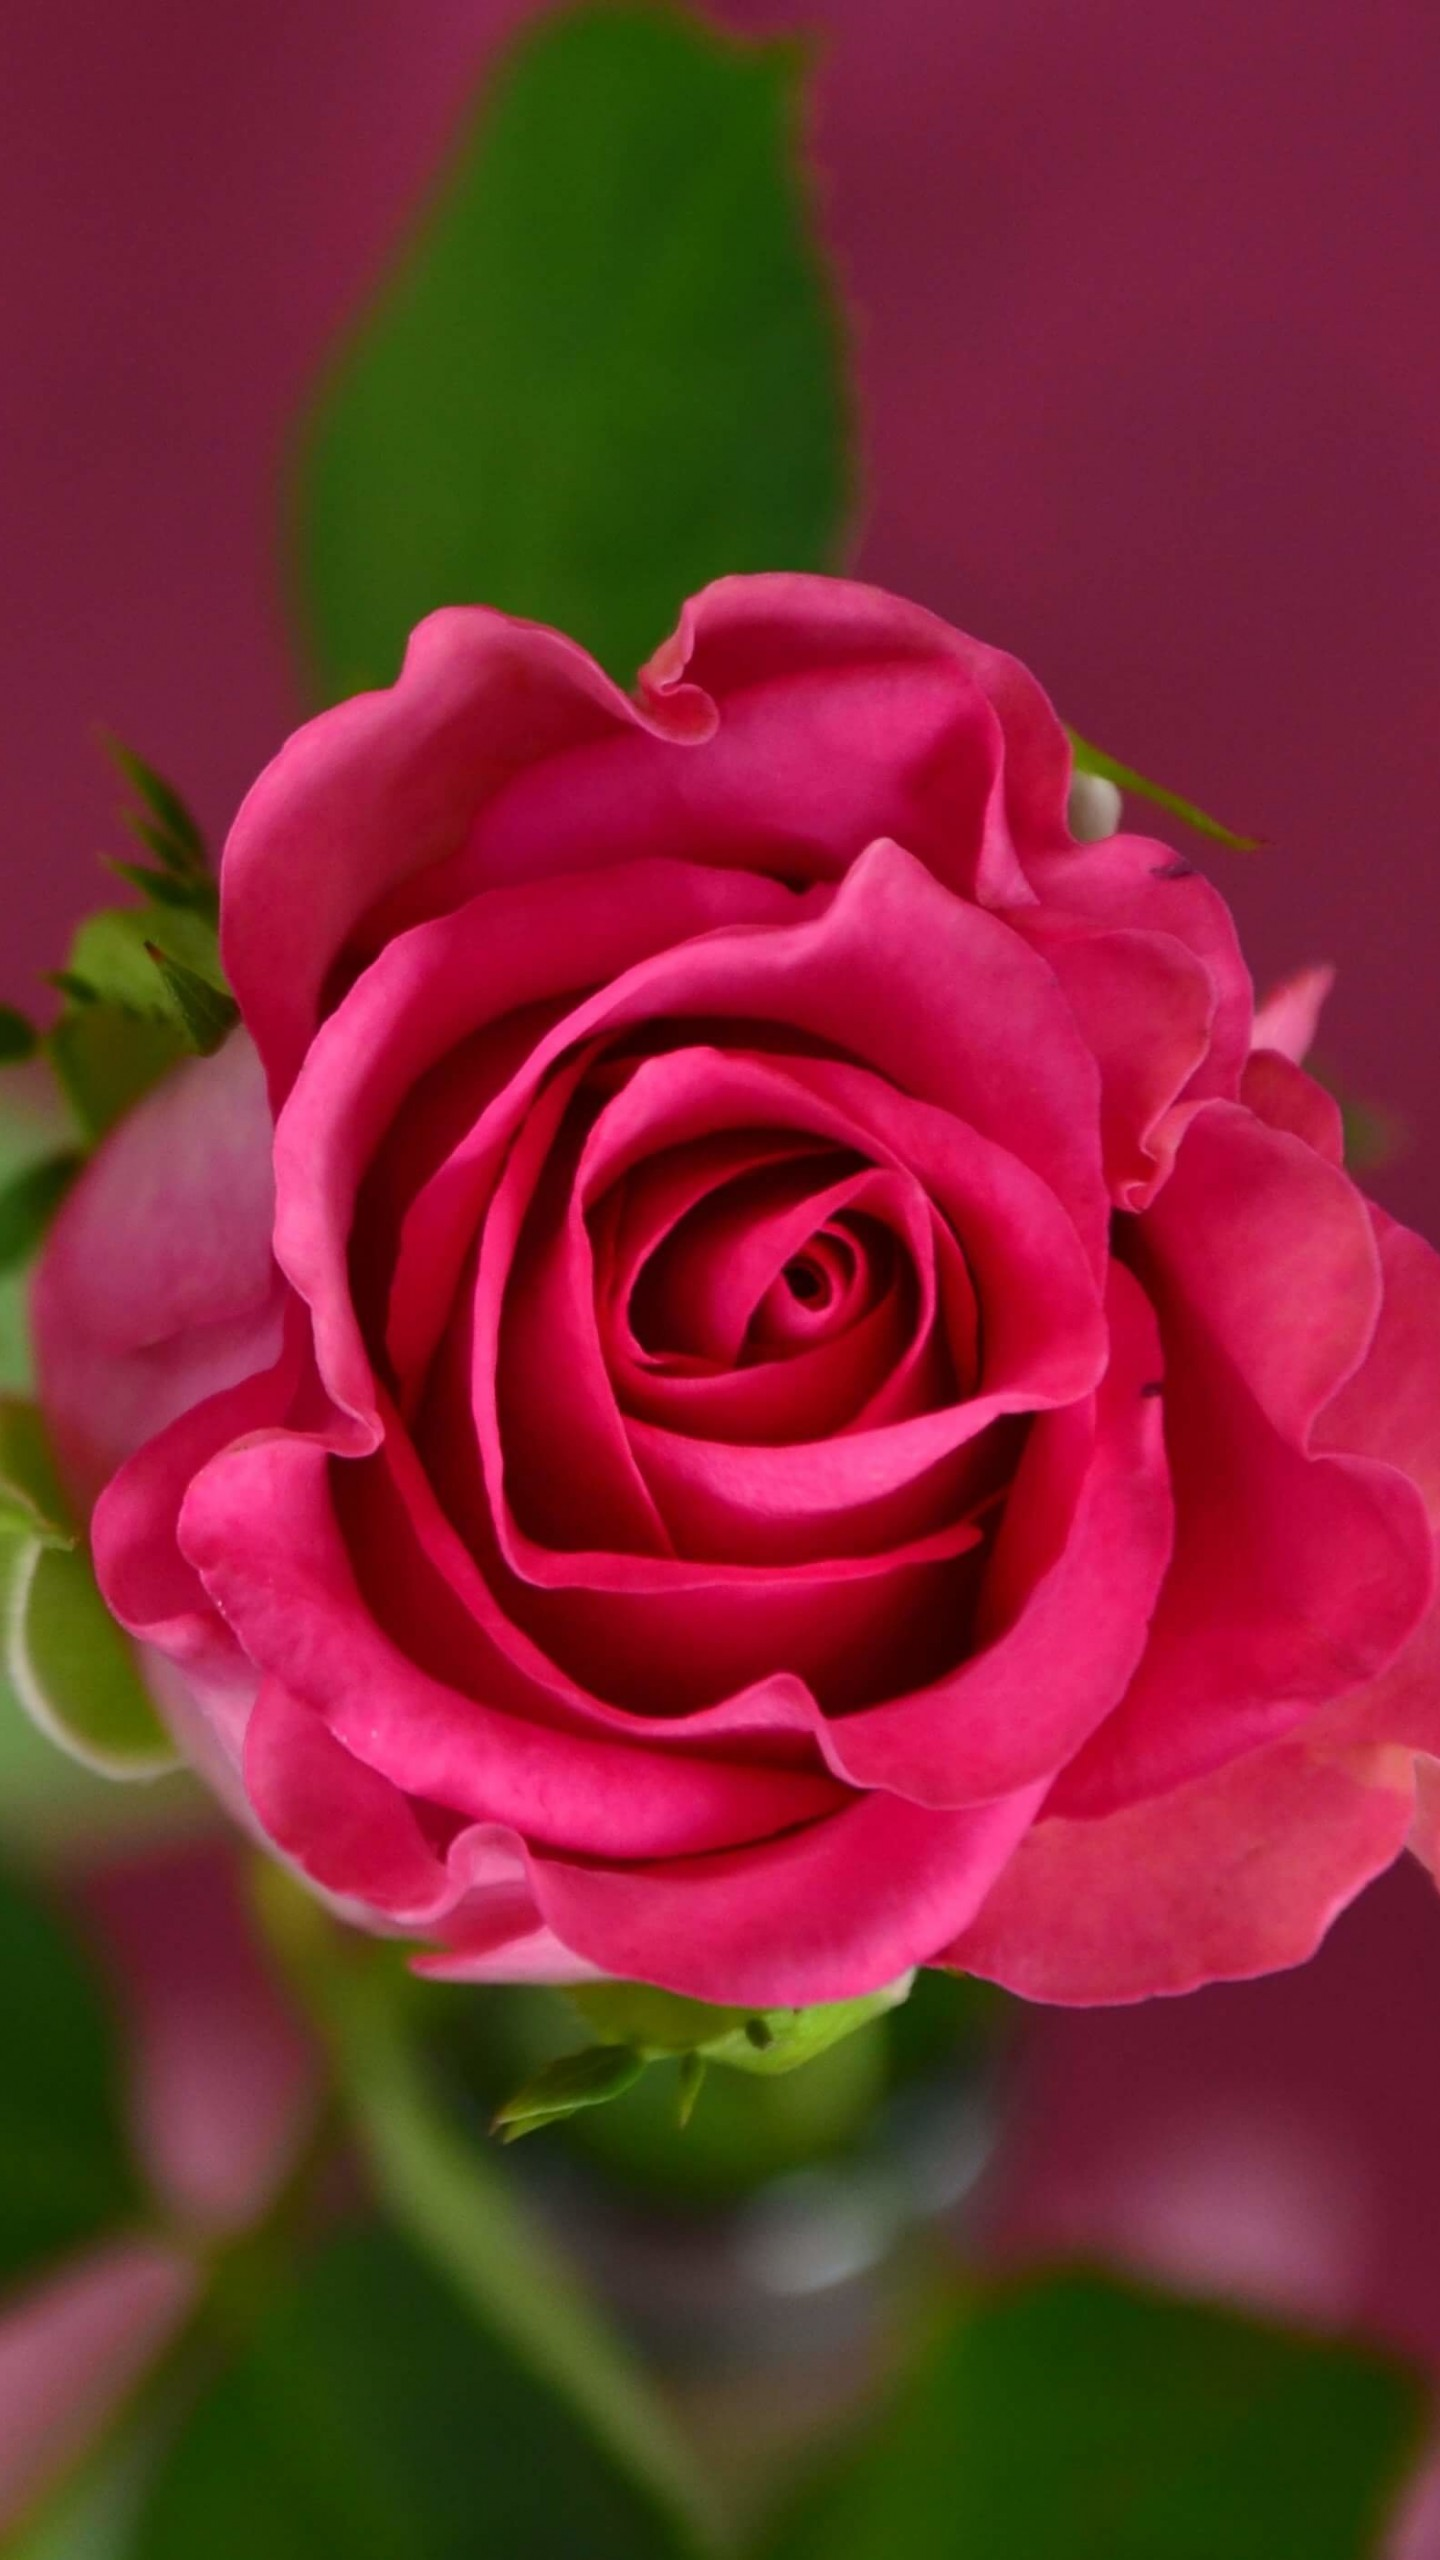 Single Pink Rose Wallpaper for SAMSUNG Galaxy Note 4